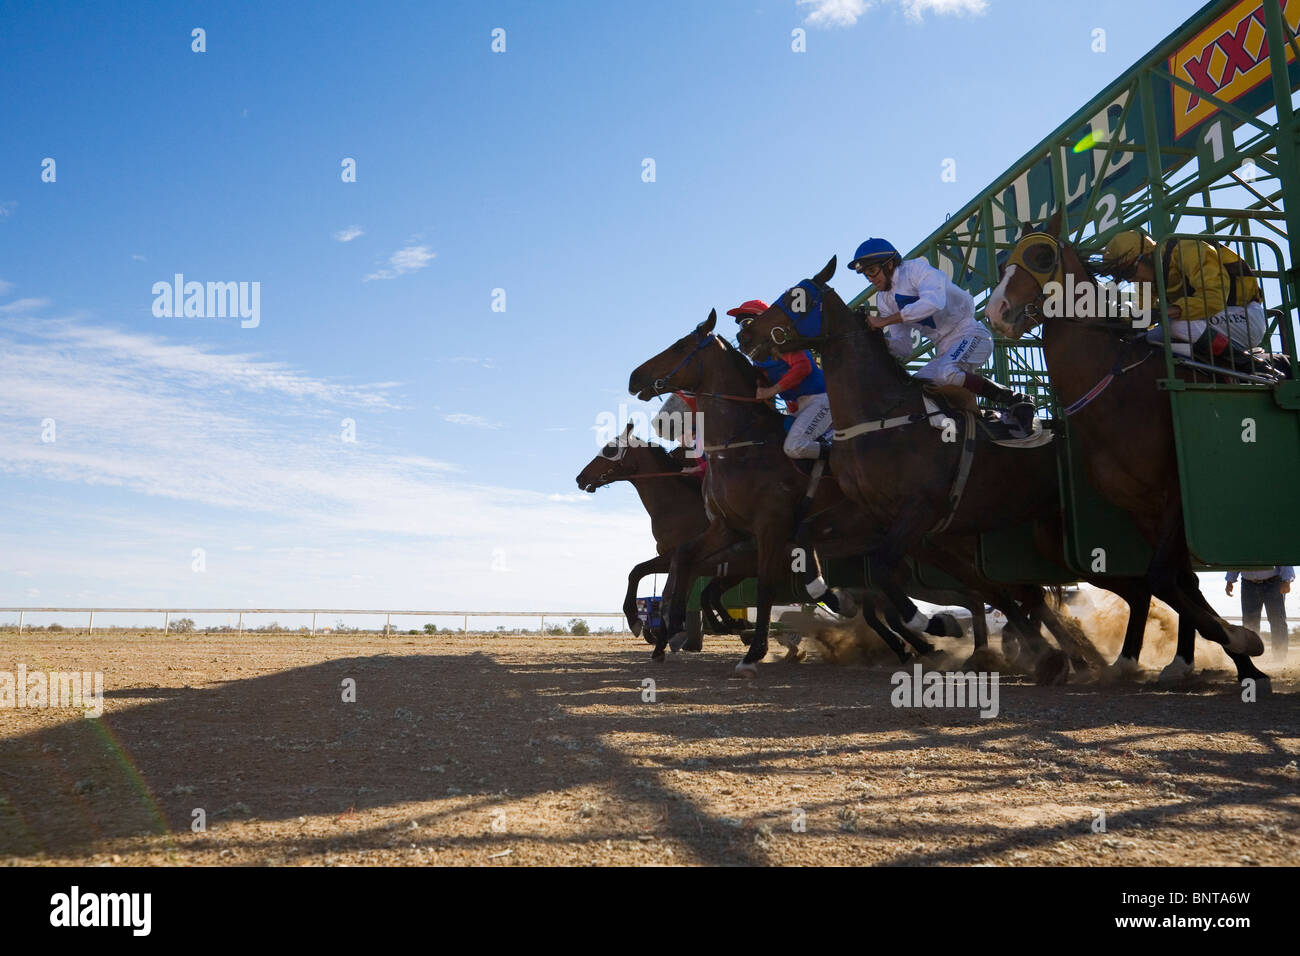 The horses jump from the starting barriers during the Birdsville Cup Races. Birdsville, Queensland, AUSTRALIA. - Stock Image